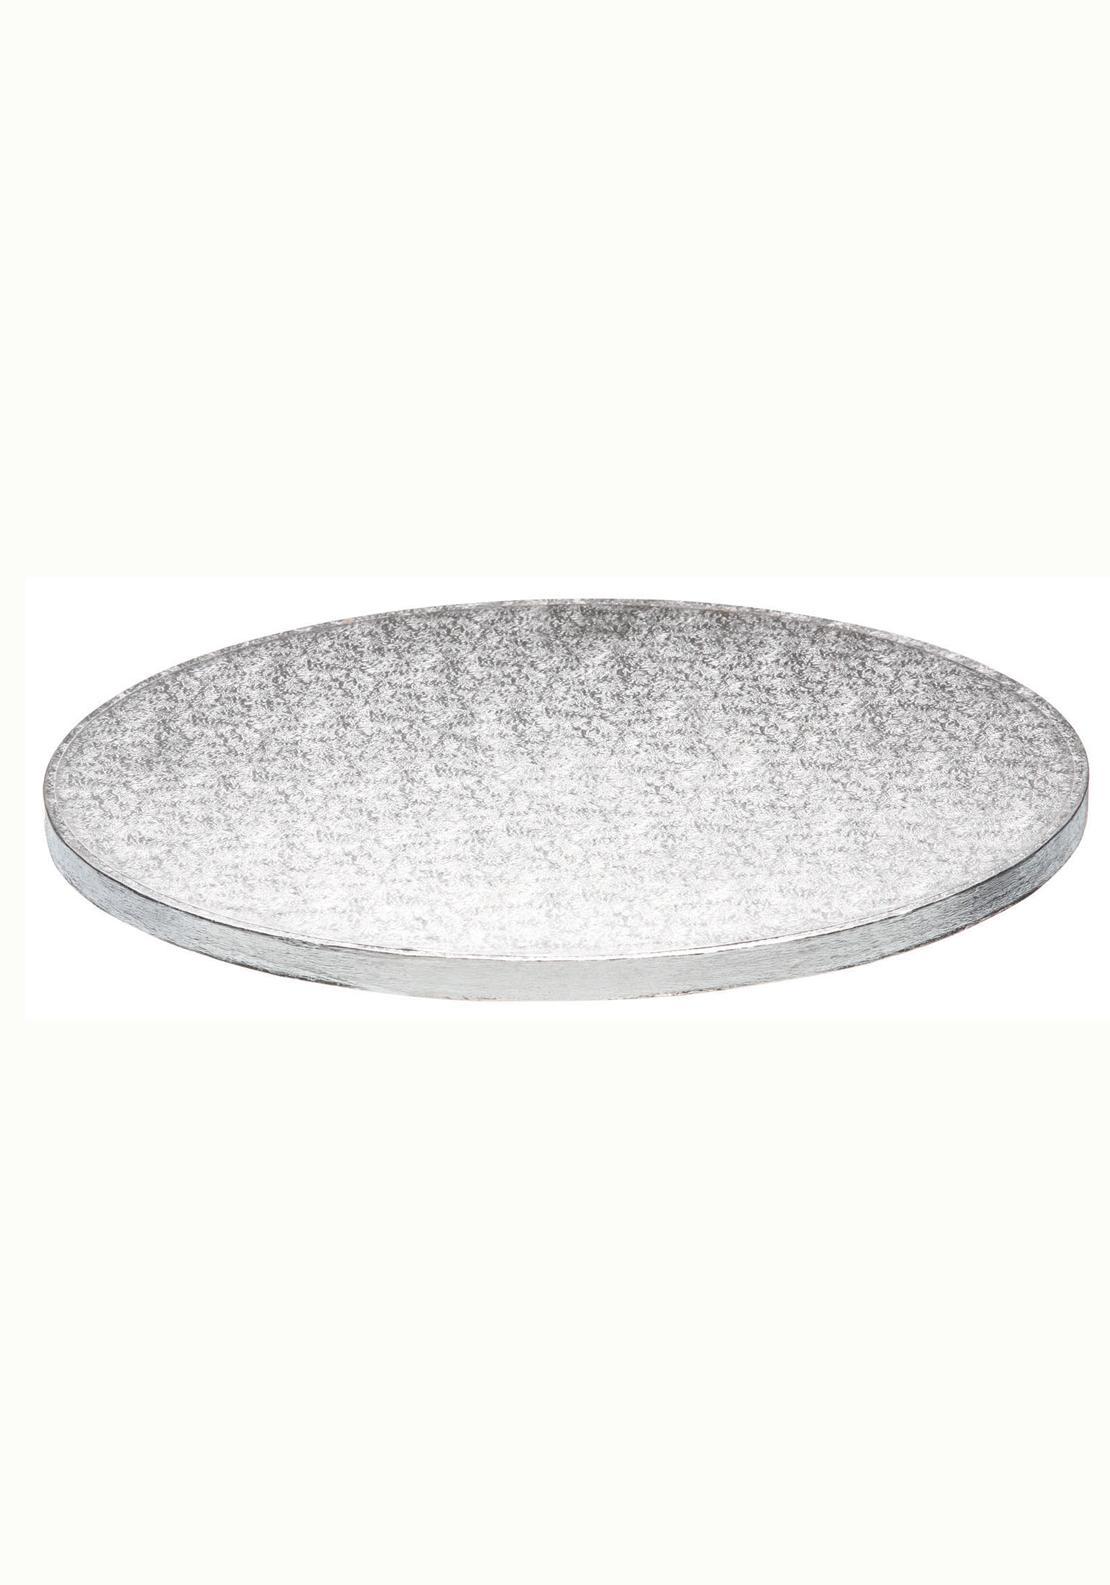 Sweetly Does It Round 30cm Cake Board